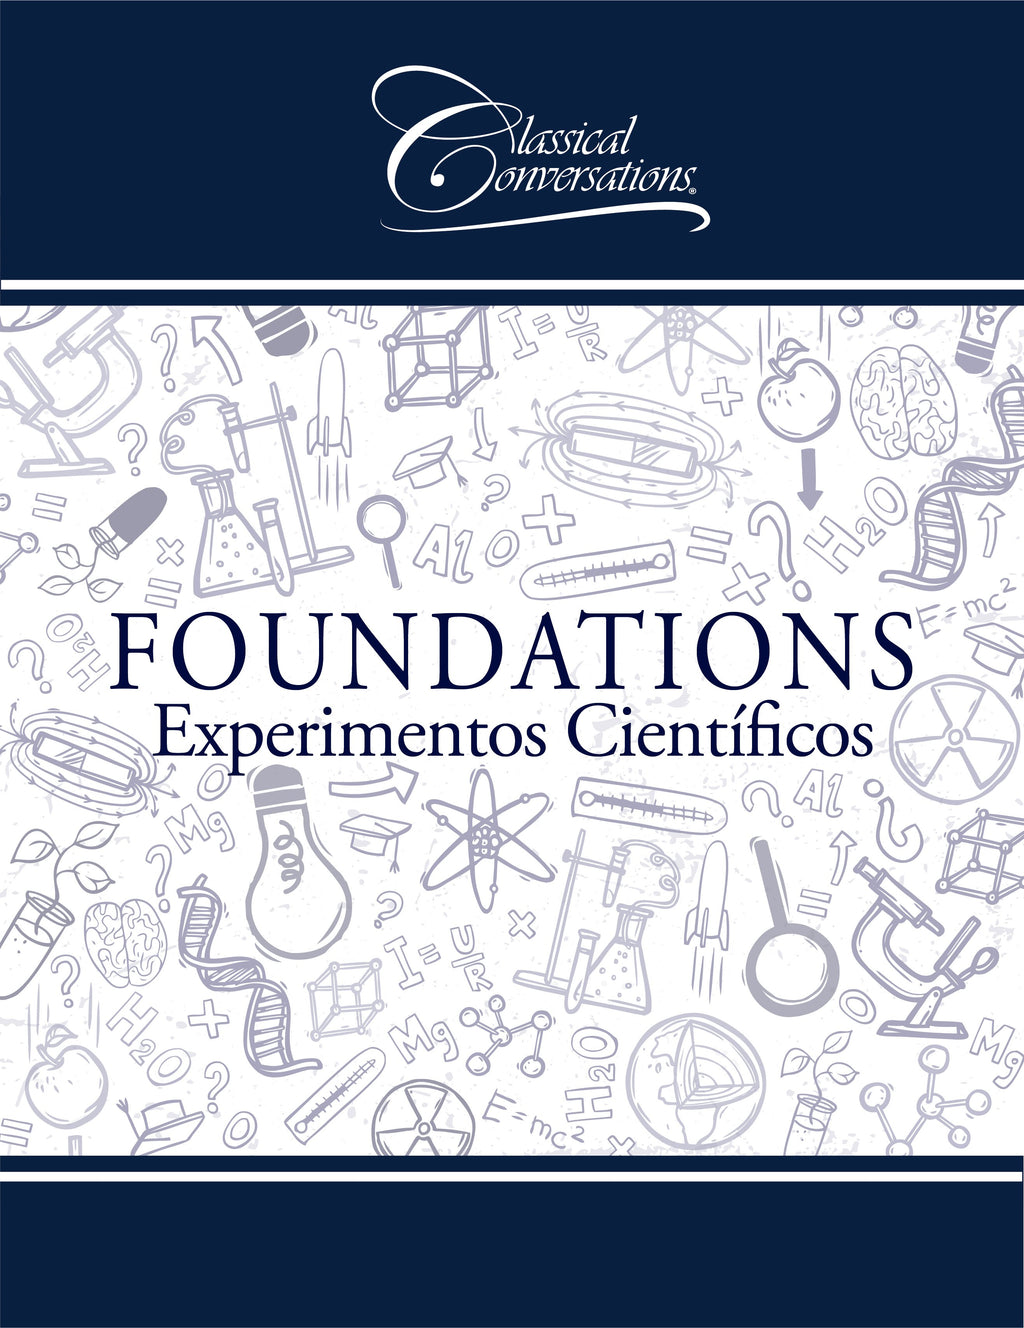 Spanish Foundations Scientific Experiments